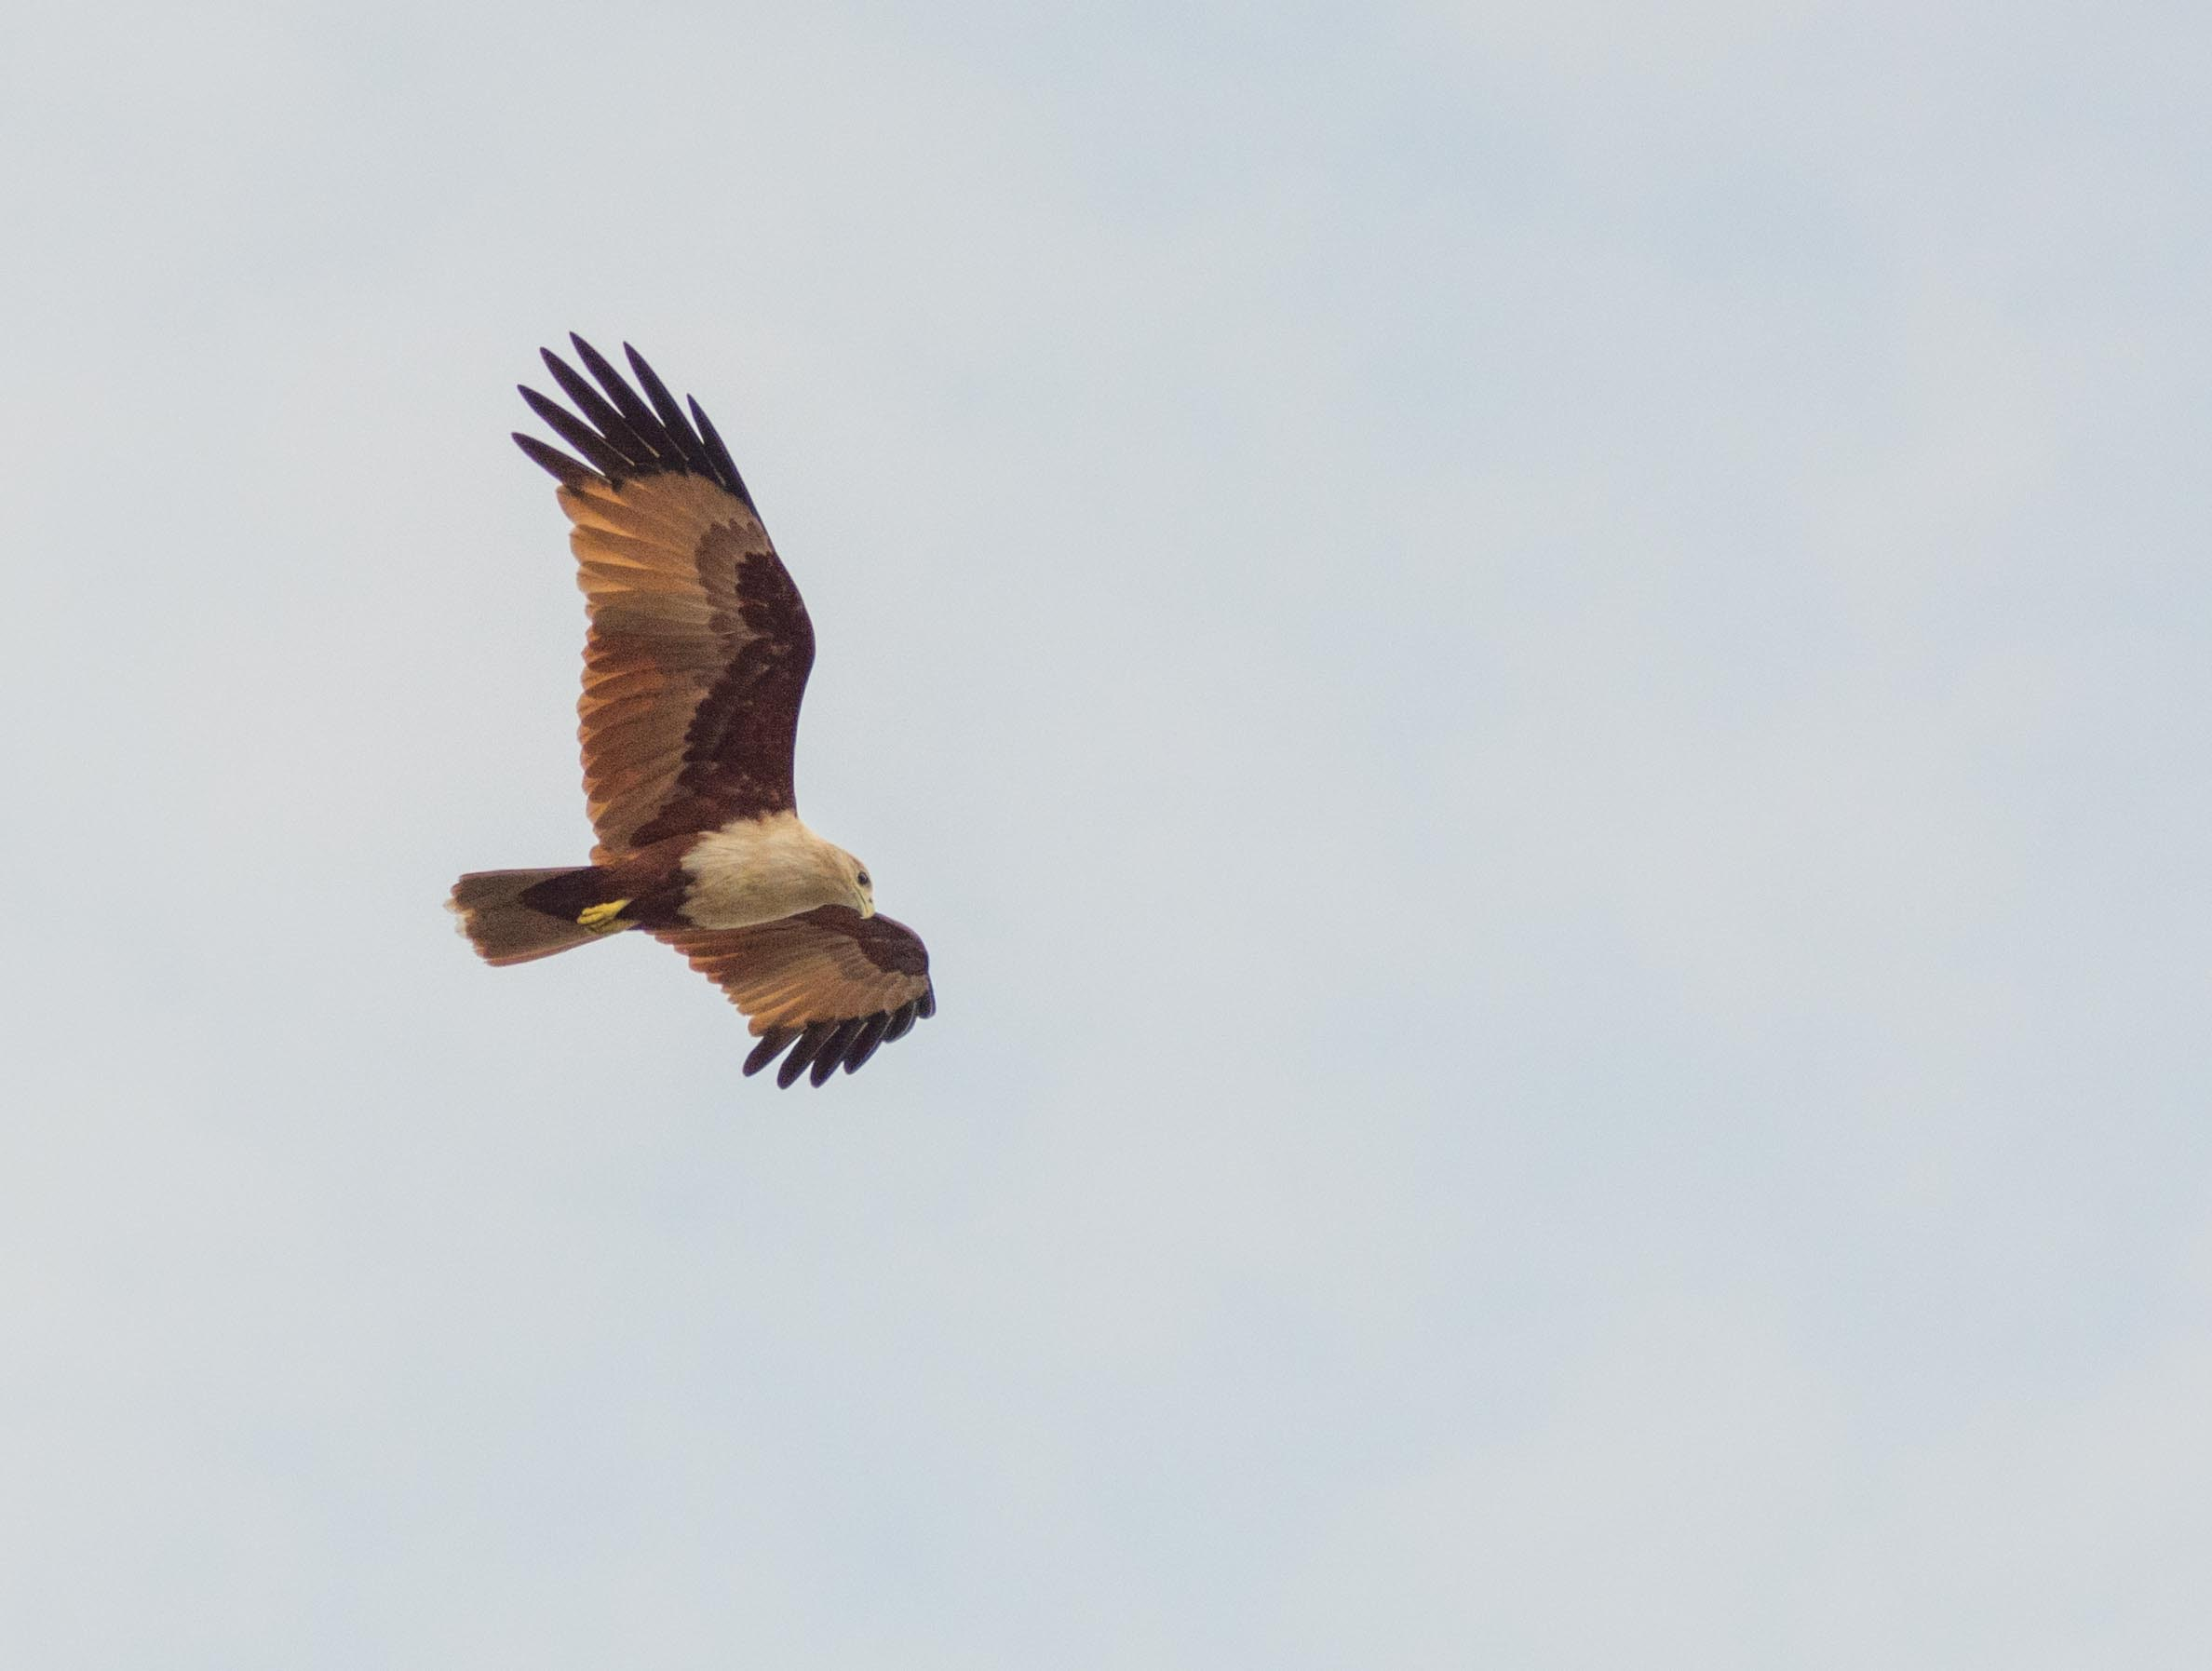 Photography of White and Brown Bird Flying, Animal, Hawk, Wildlife, Wild animal, HQ Photo